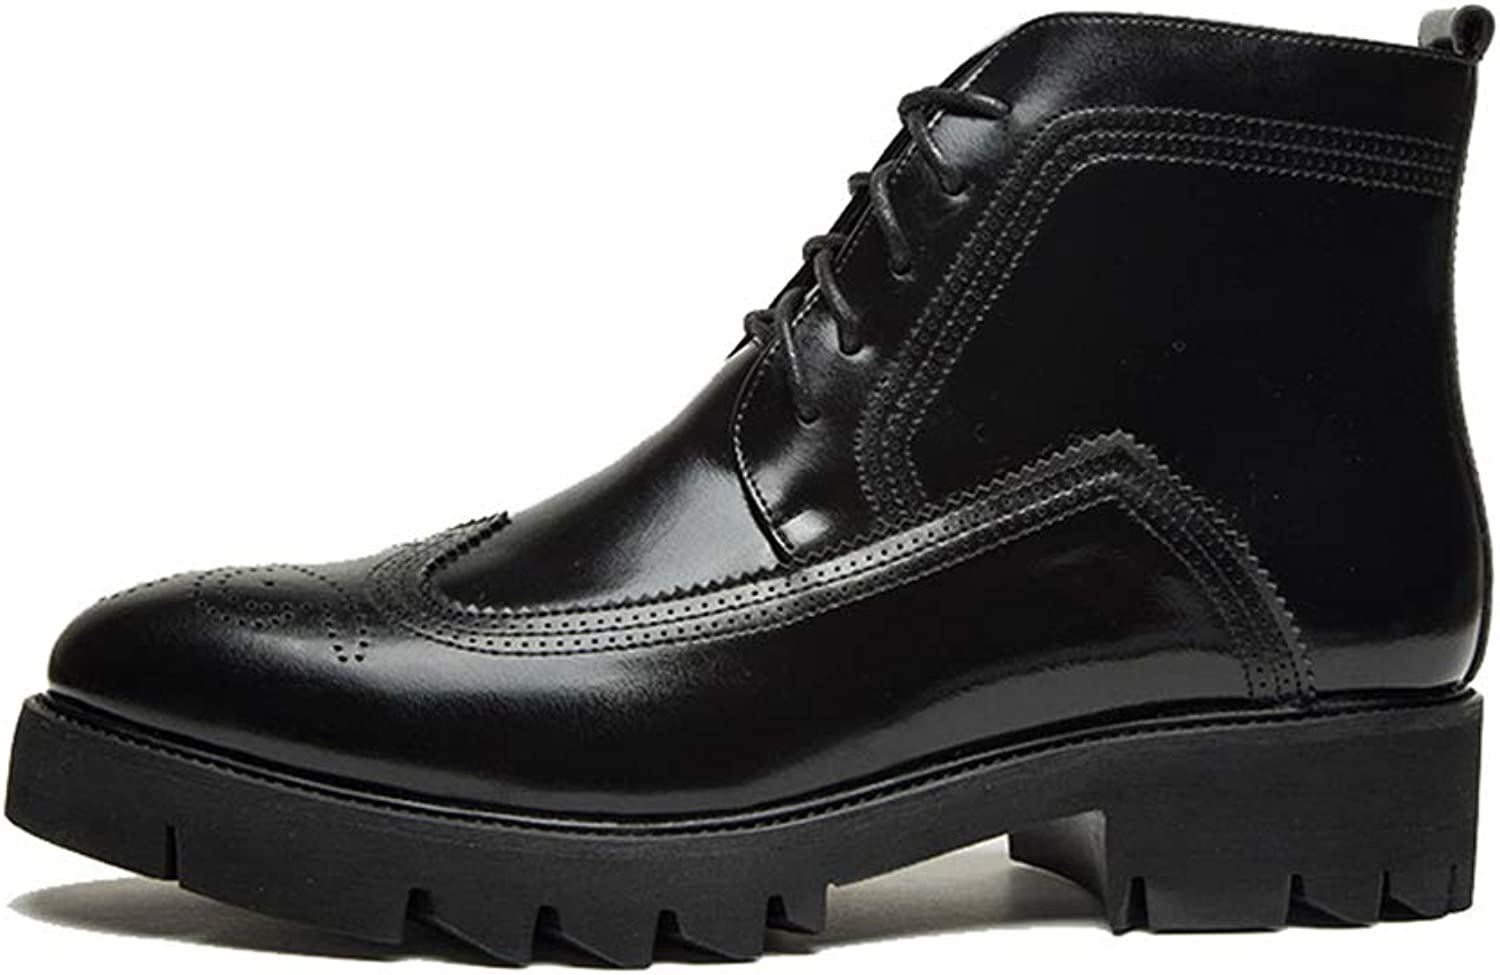 Easy Go Shopping Men's Fashion Leisure Boots Casual High-top Individual PU Leather Lace up shoes. Cricket shoes (color   Black, Size   8.5 UK)